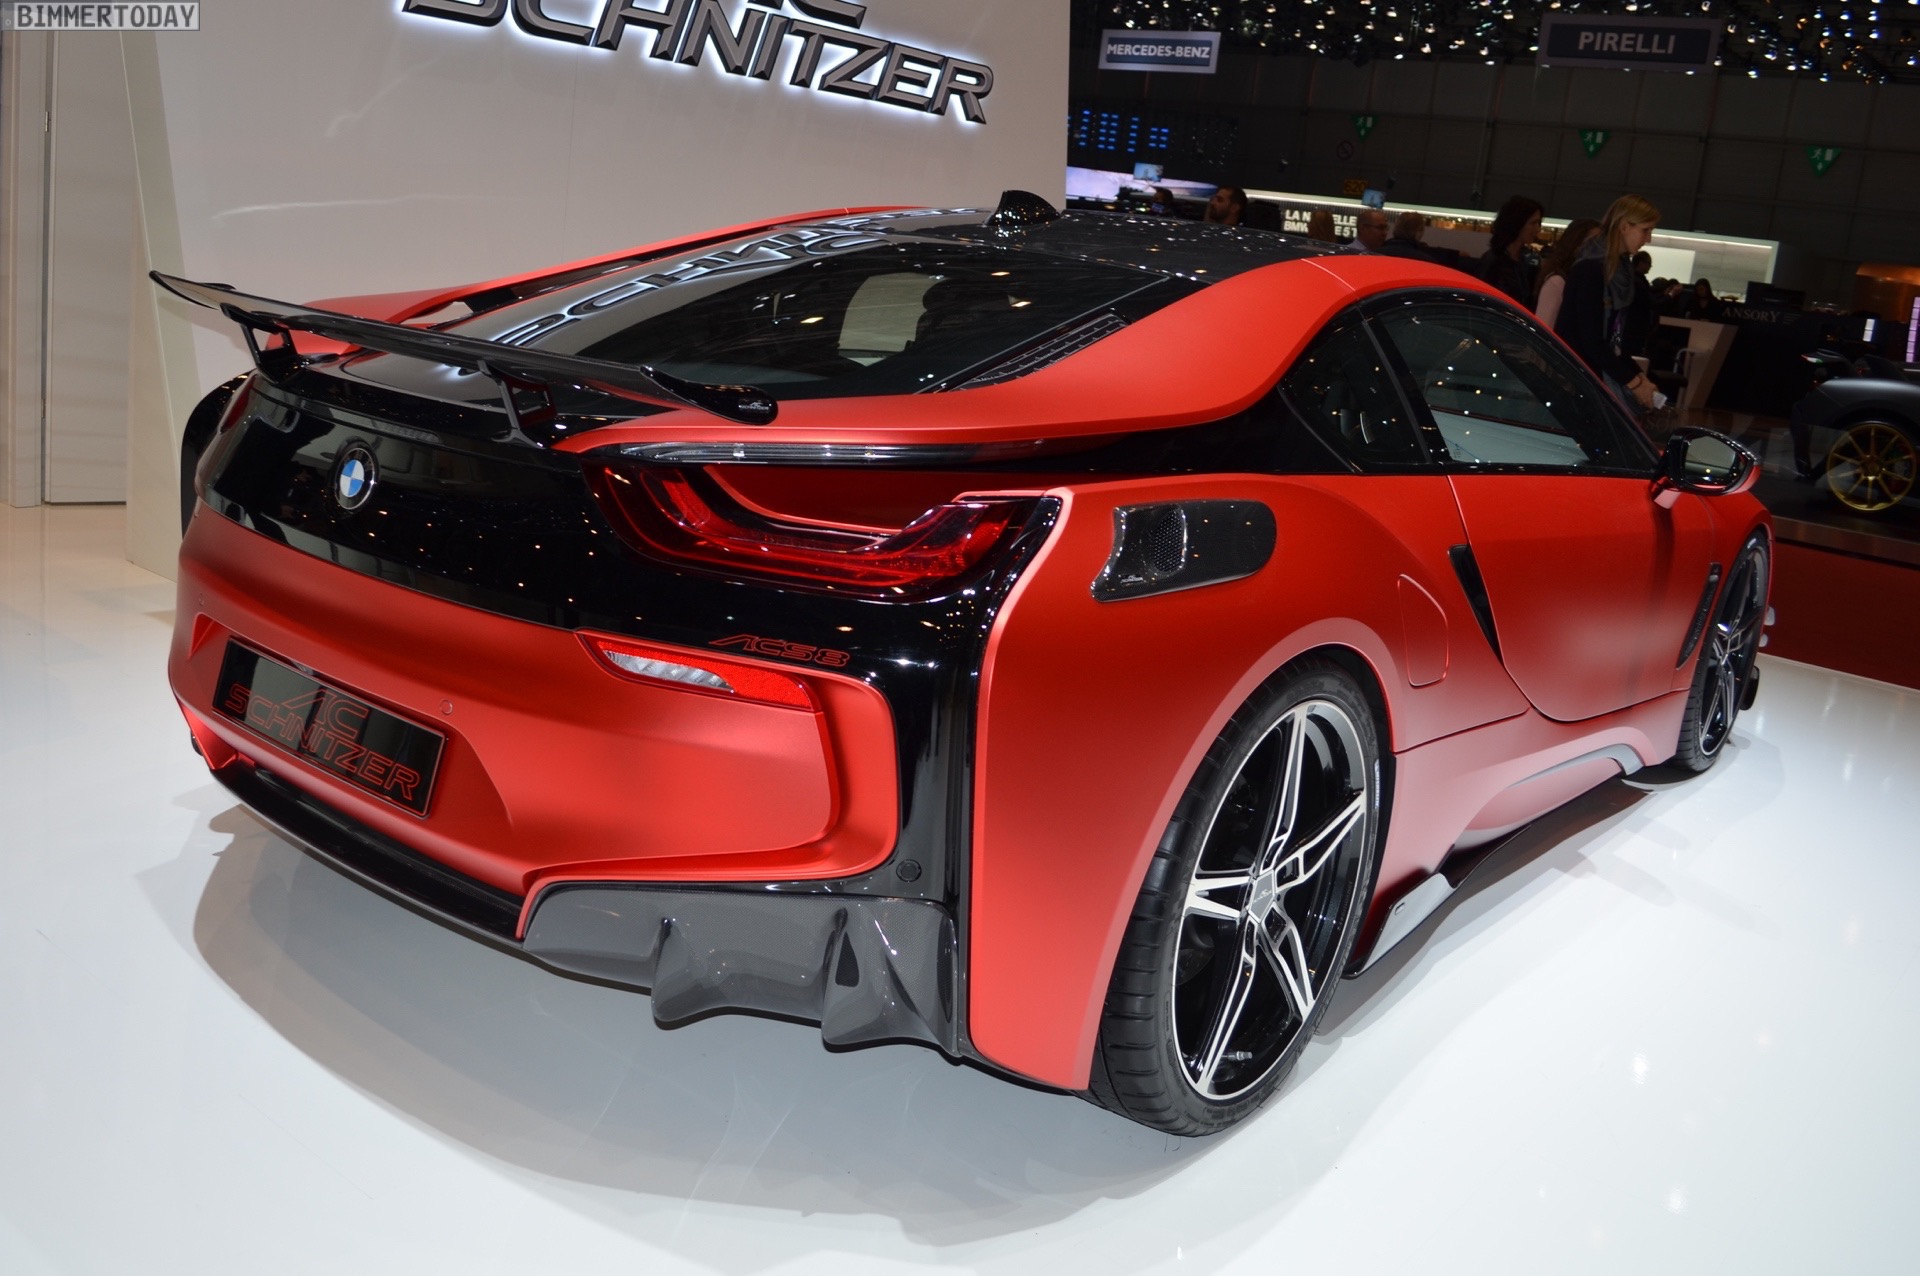 Floor Mats Bmw I3 >> More photos of the hot Inferno Red BMW i8 by AC Schnitzer